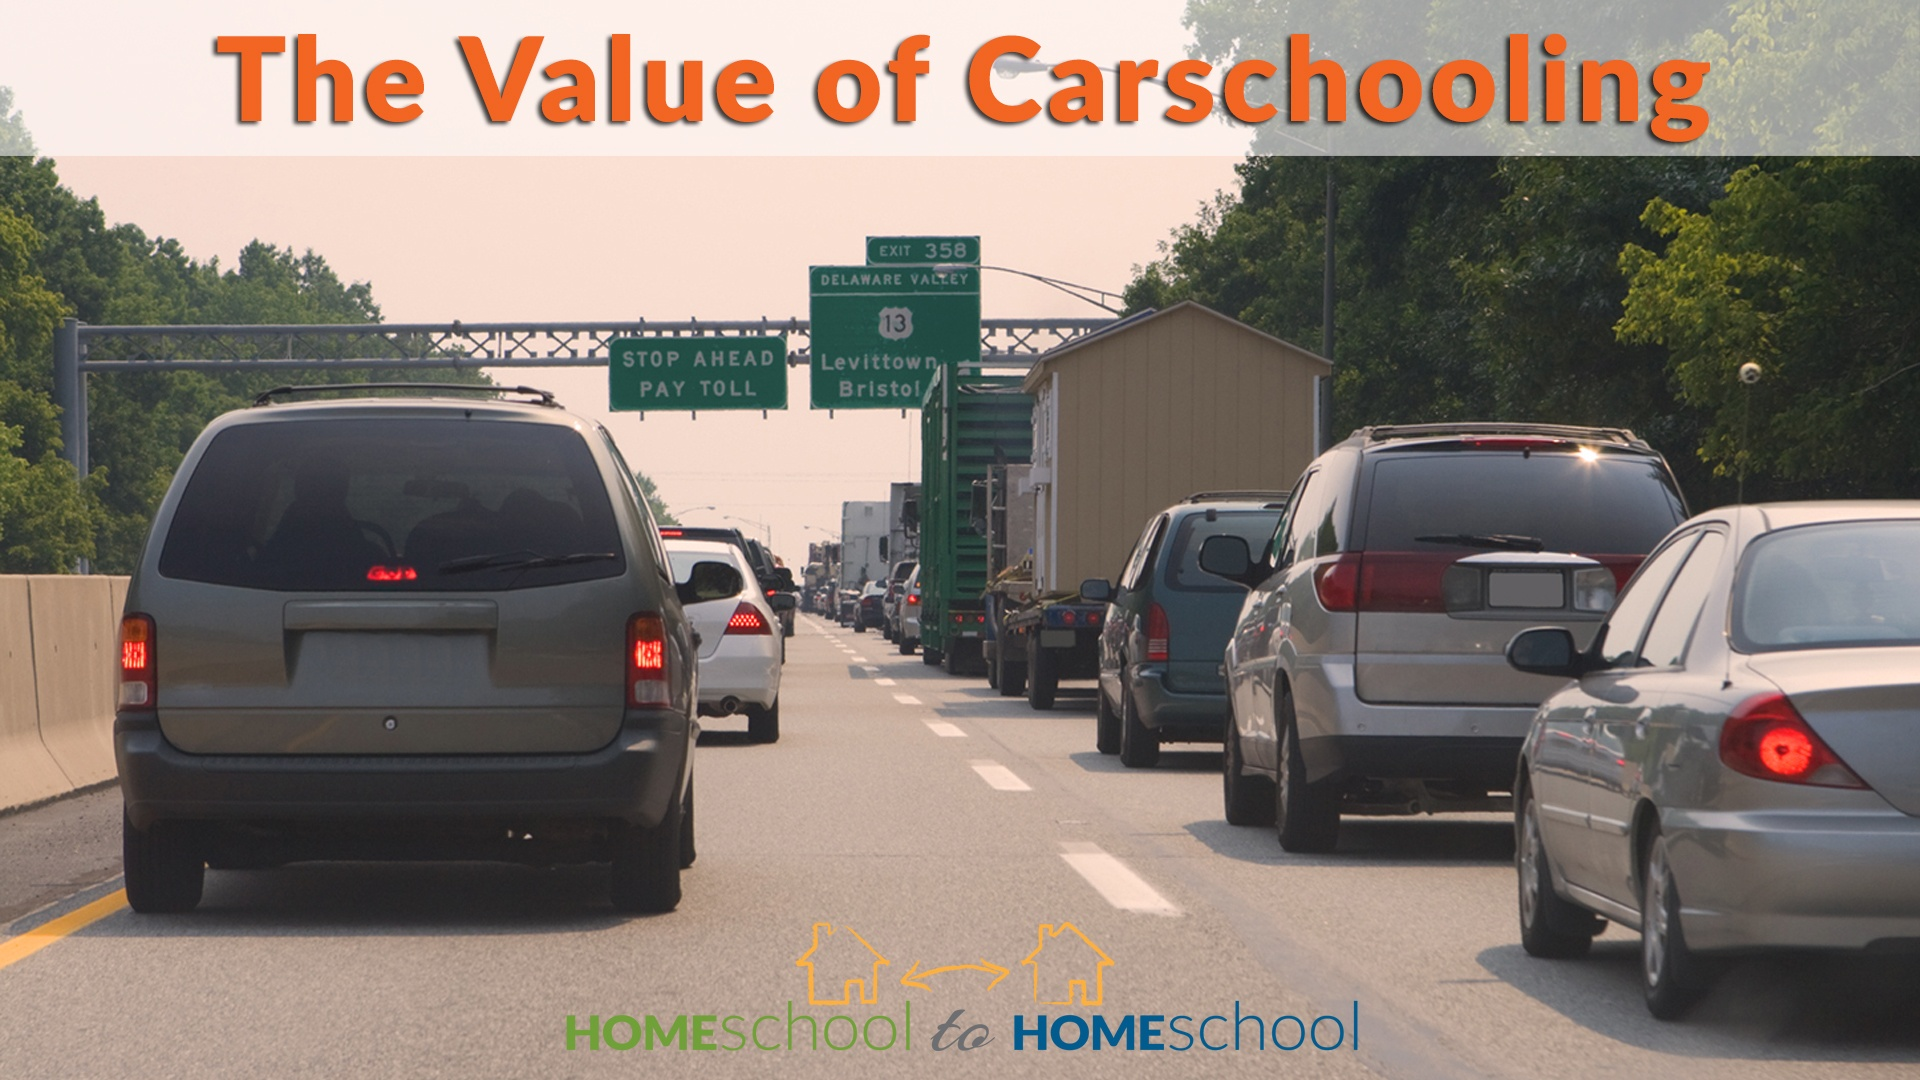 What is Carschooling? What is the Value of Carschooling?